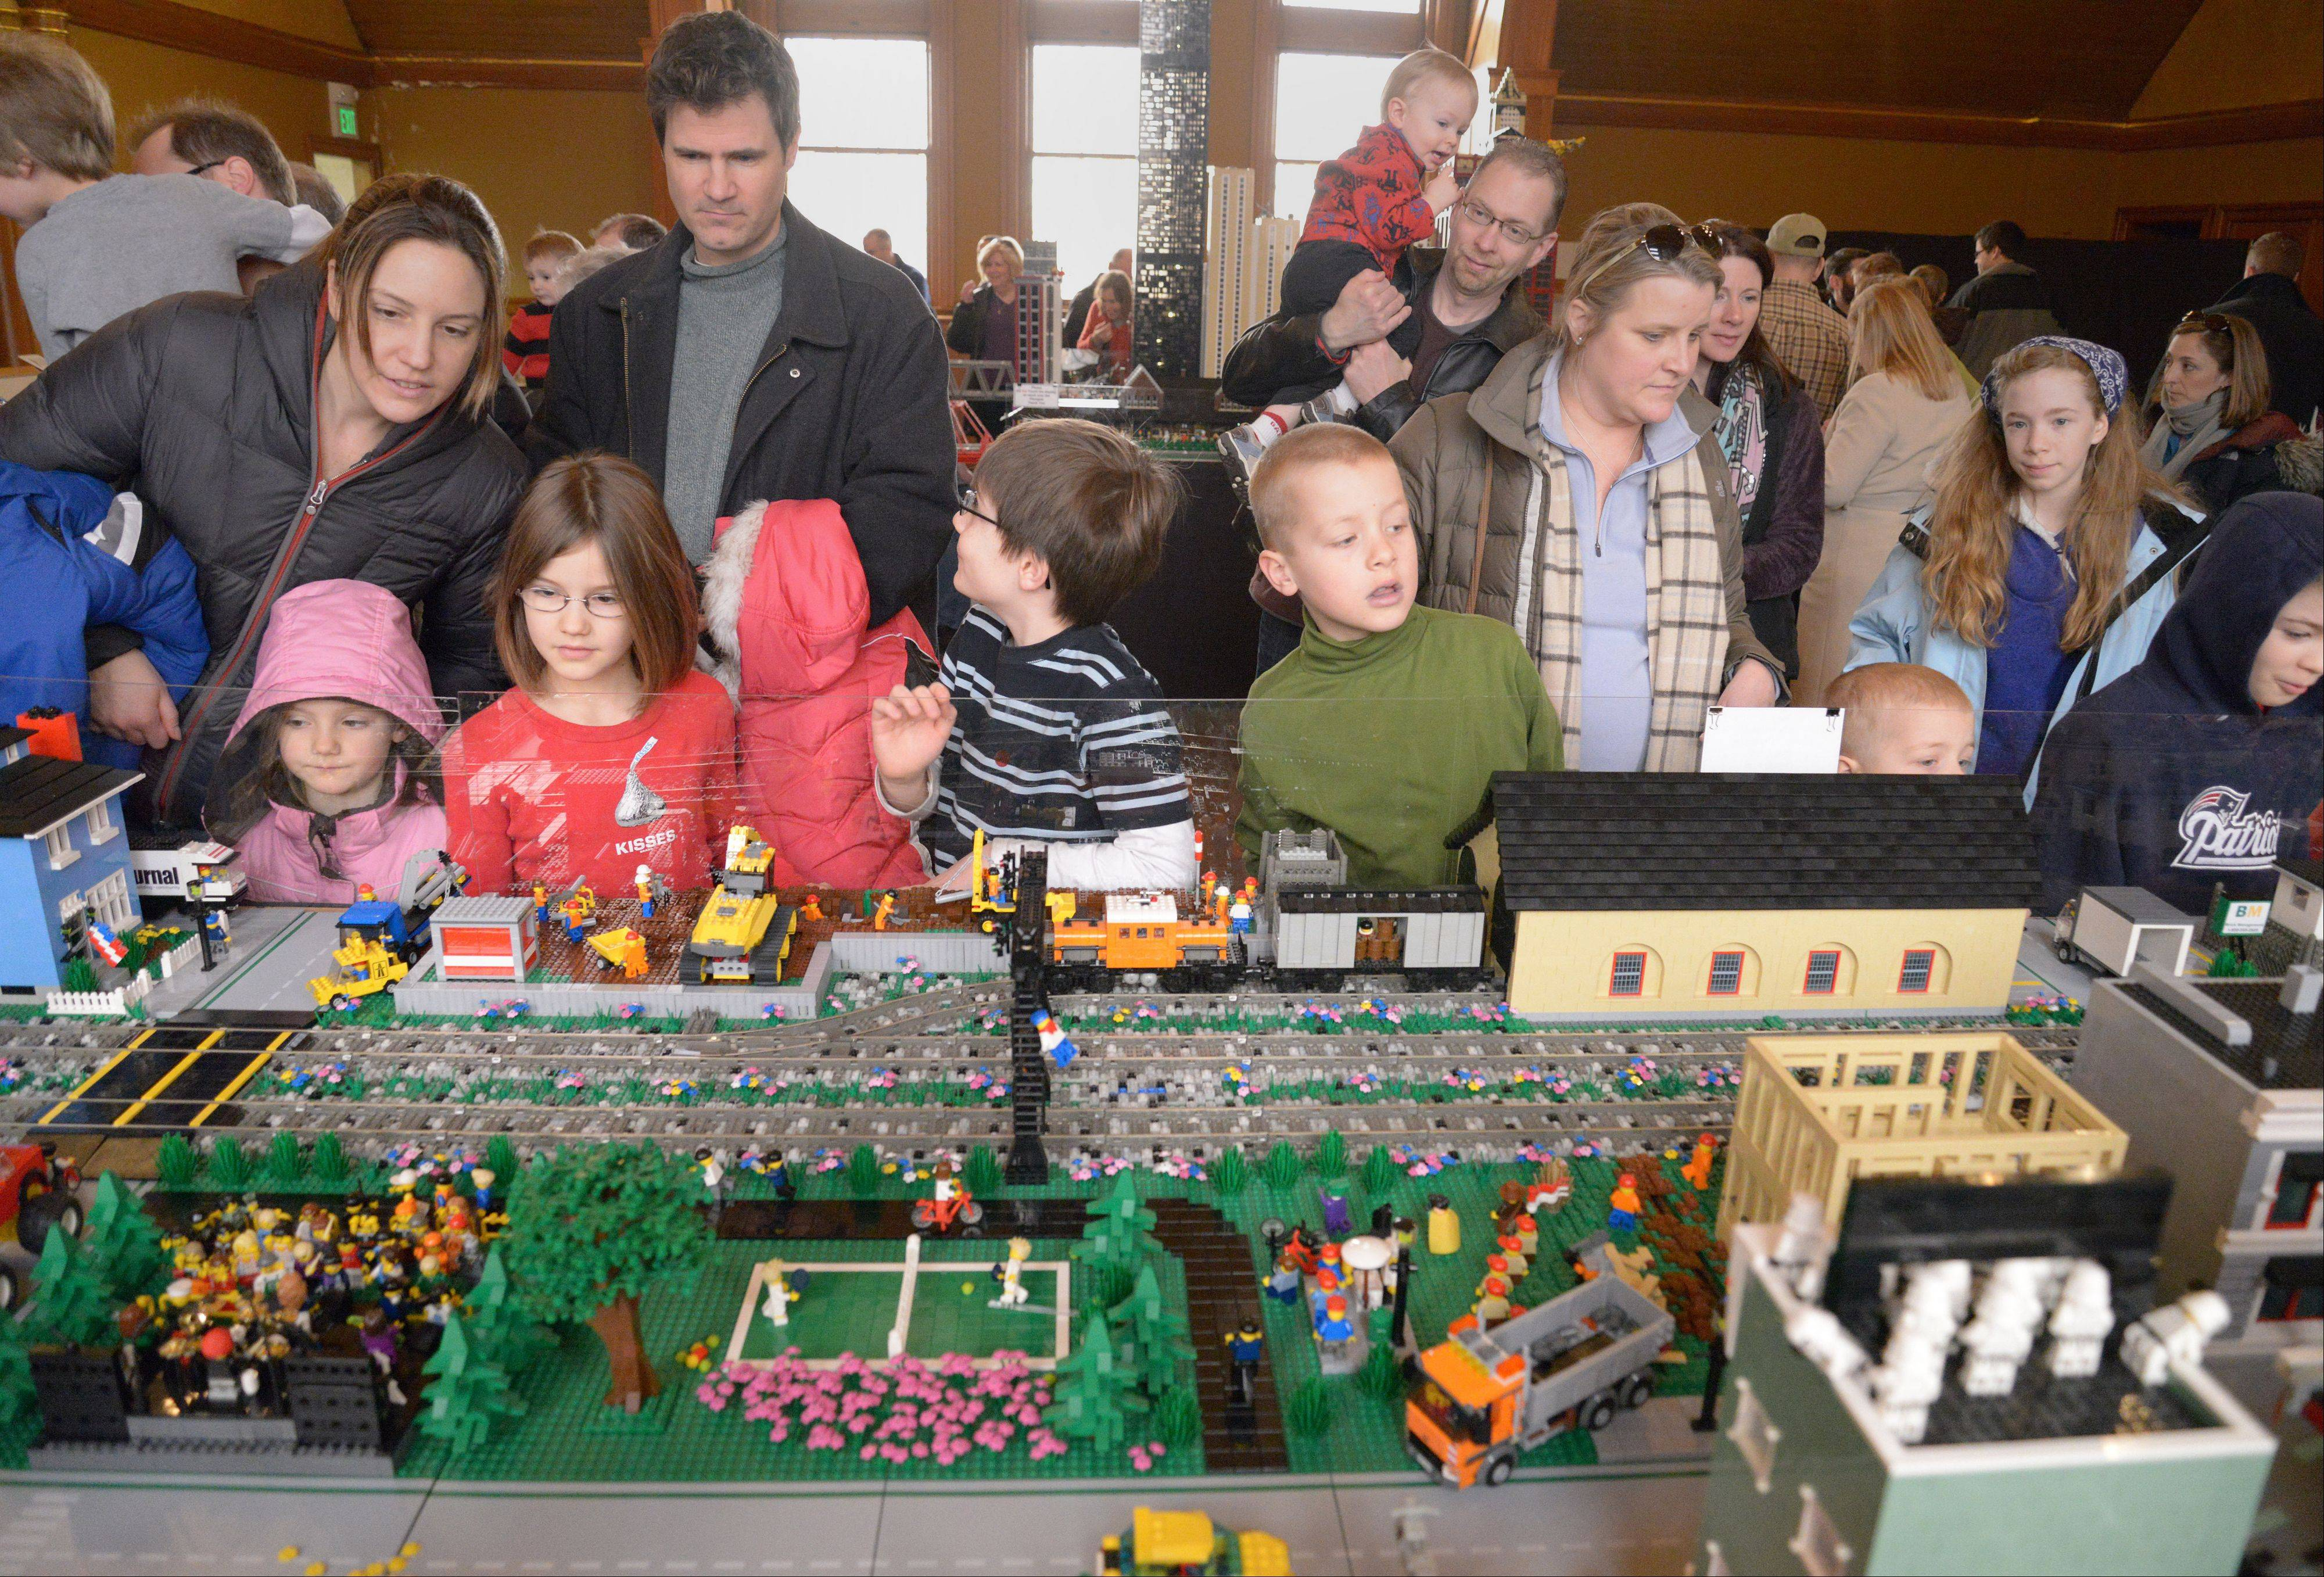 Parents and kids alike enjoyed the Northern Illinois Lego Train Club�s show Saturday at the DuPage County Historical Museum in Wheaton. The event continues Sunday.